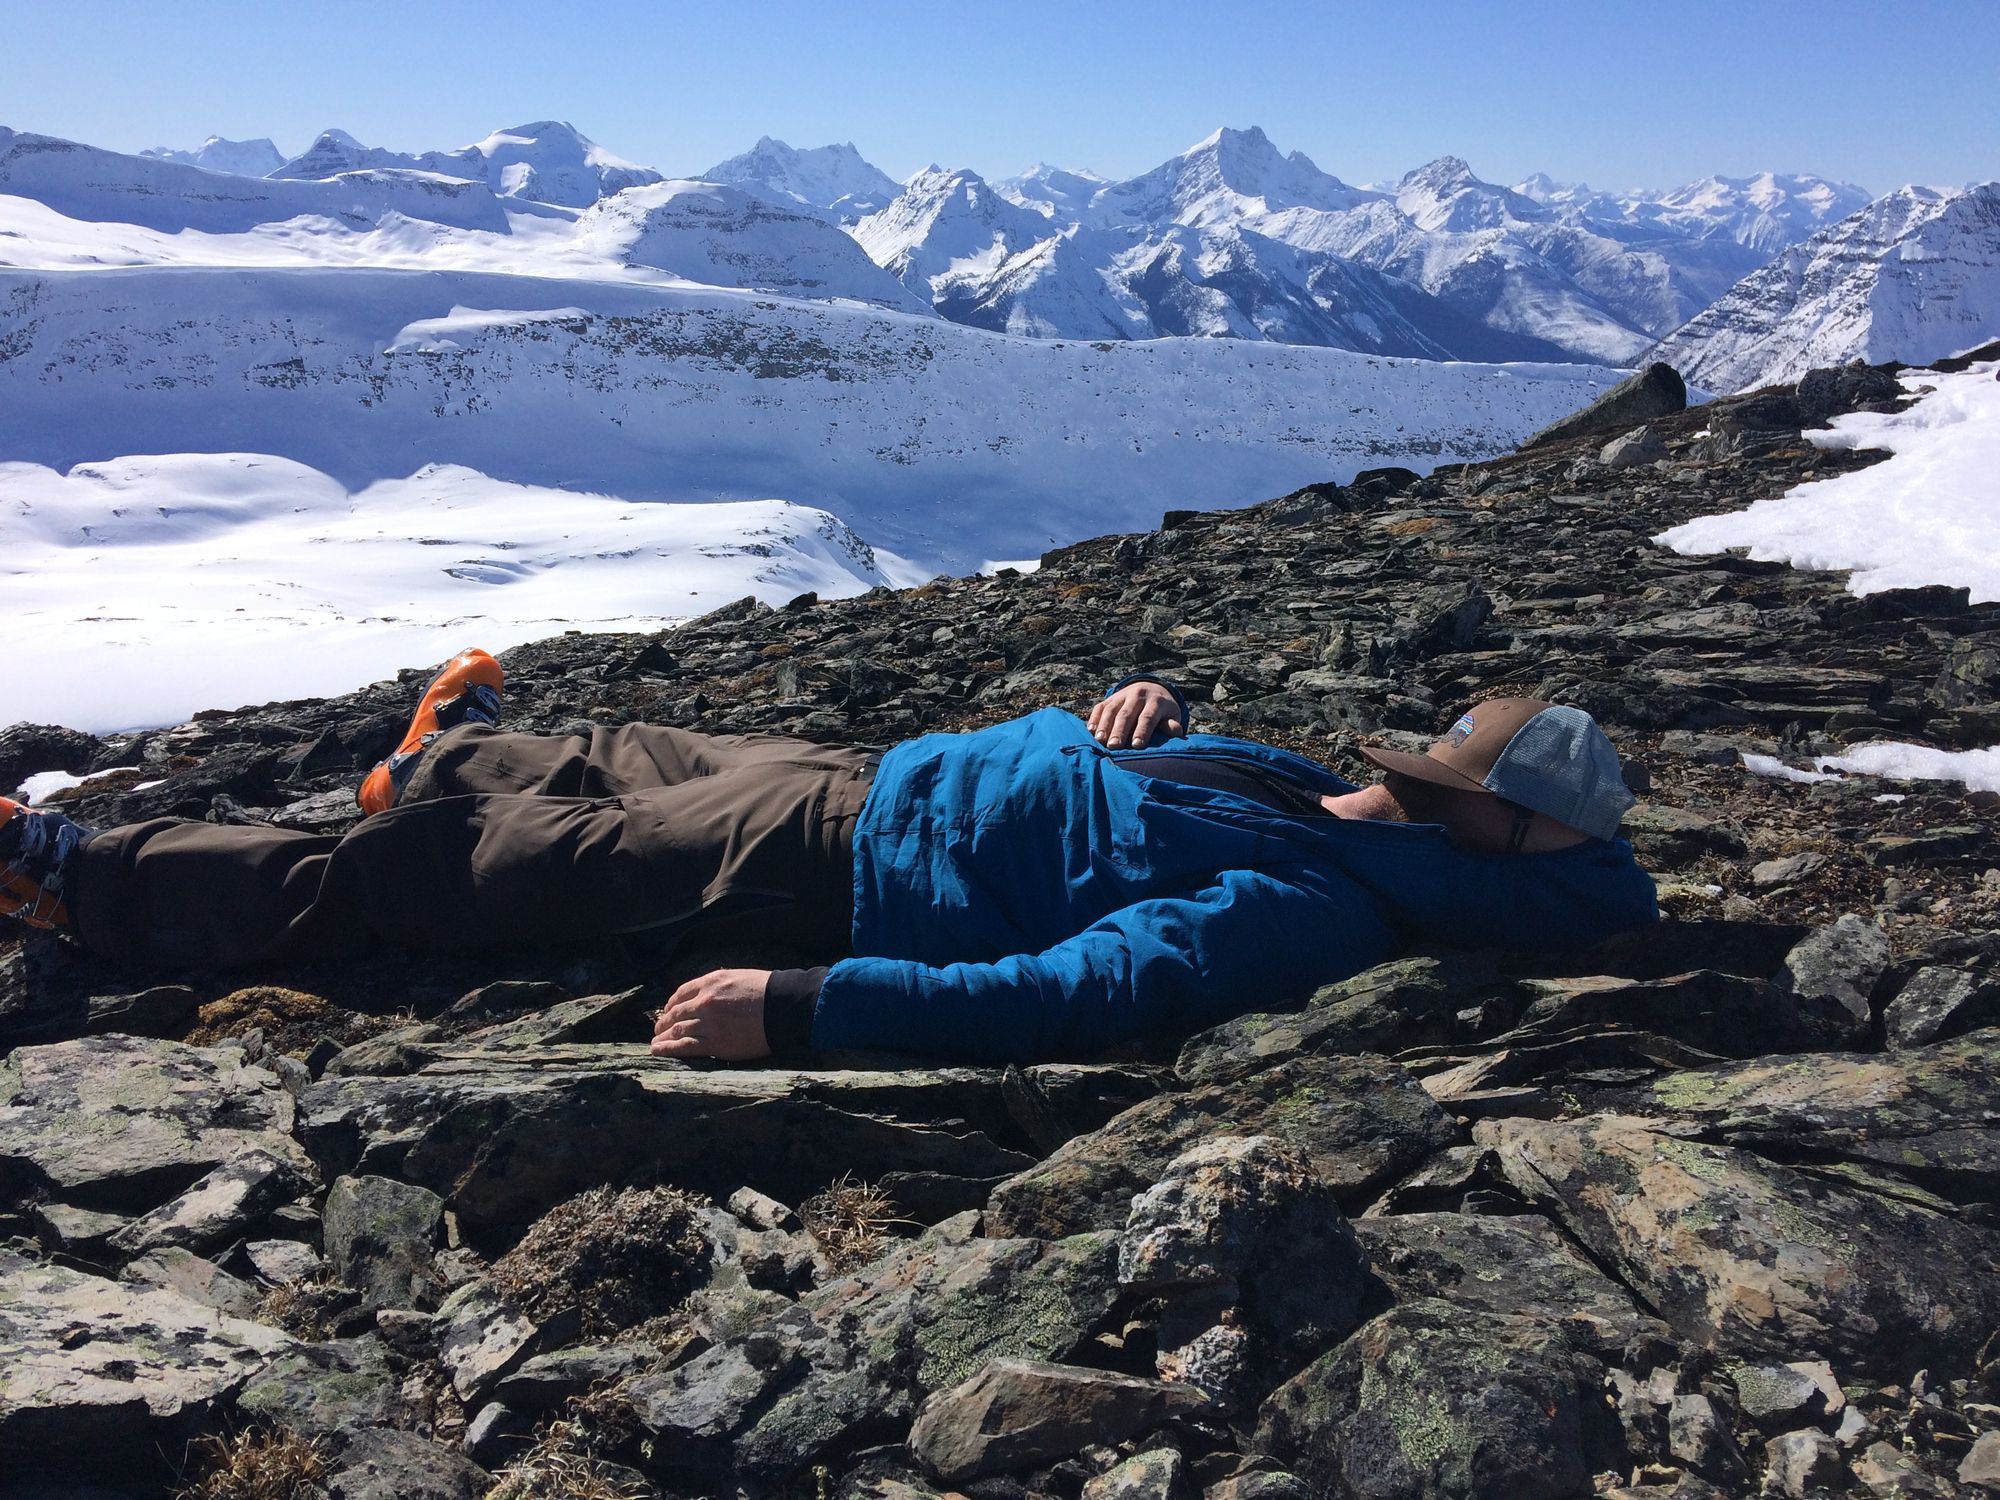 Some days are tougher than others. This clearly was not one of those days. Happy Friday!   #mountainlife #canadianadventurecompany #naptime